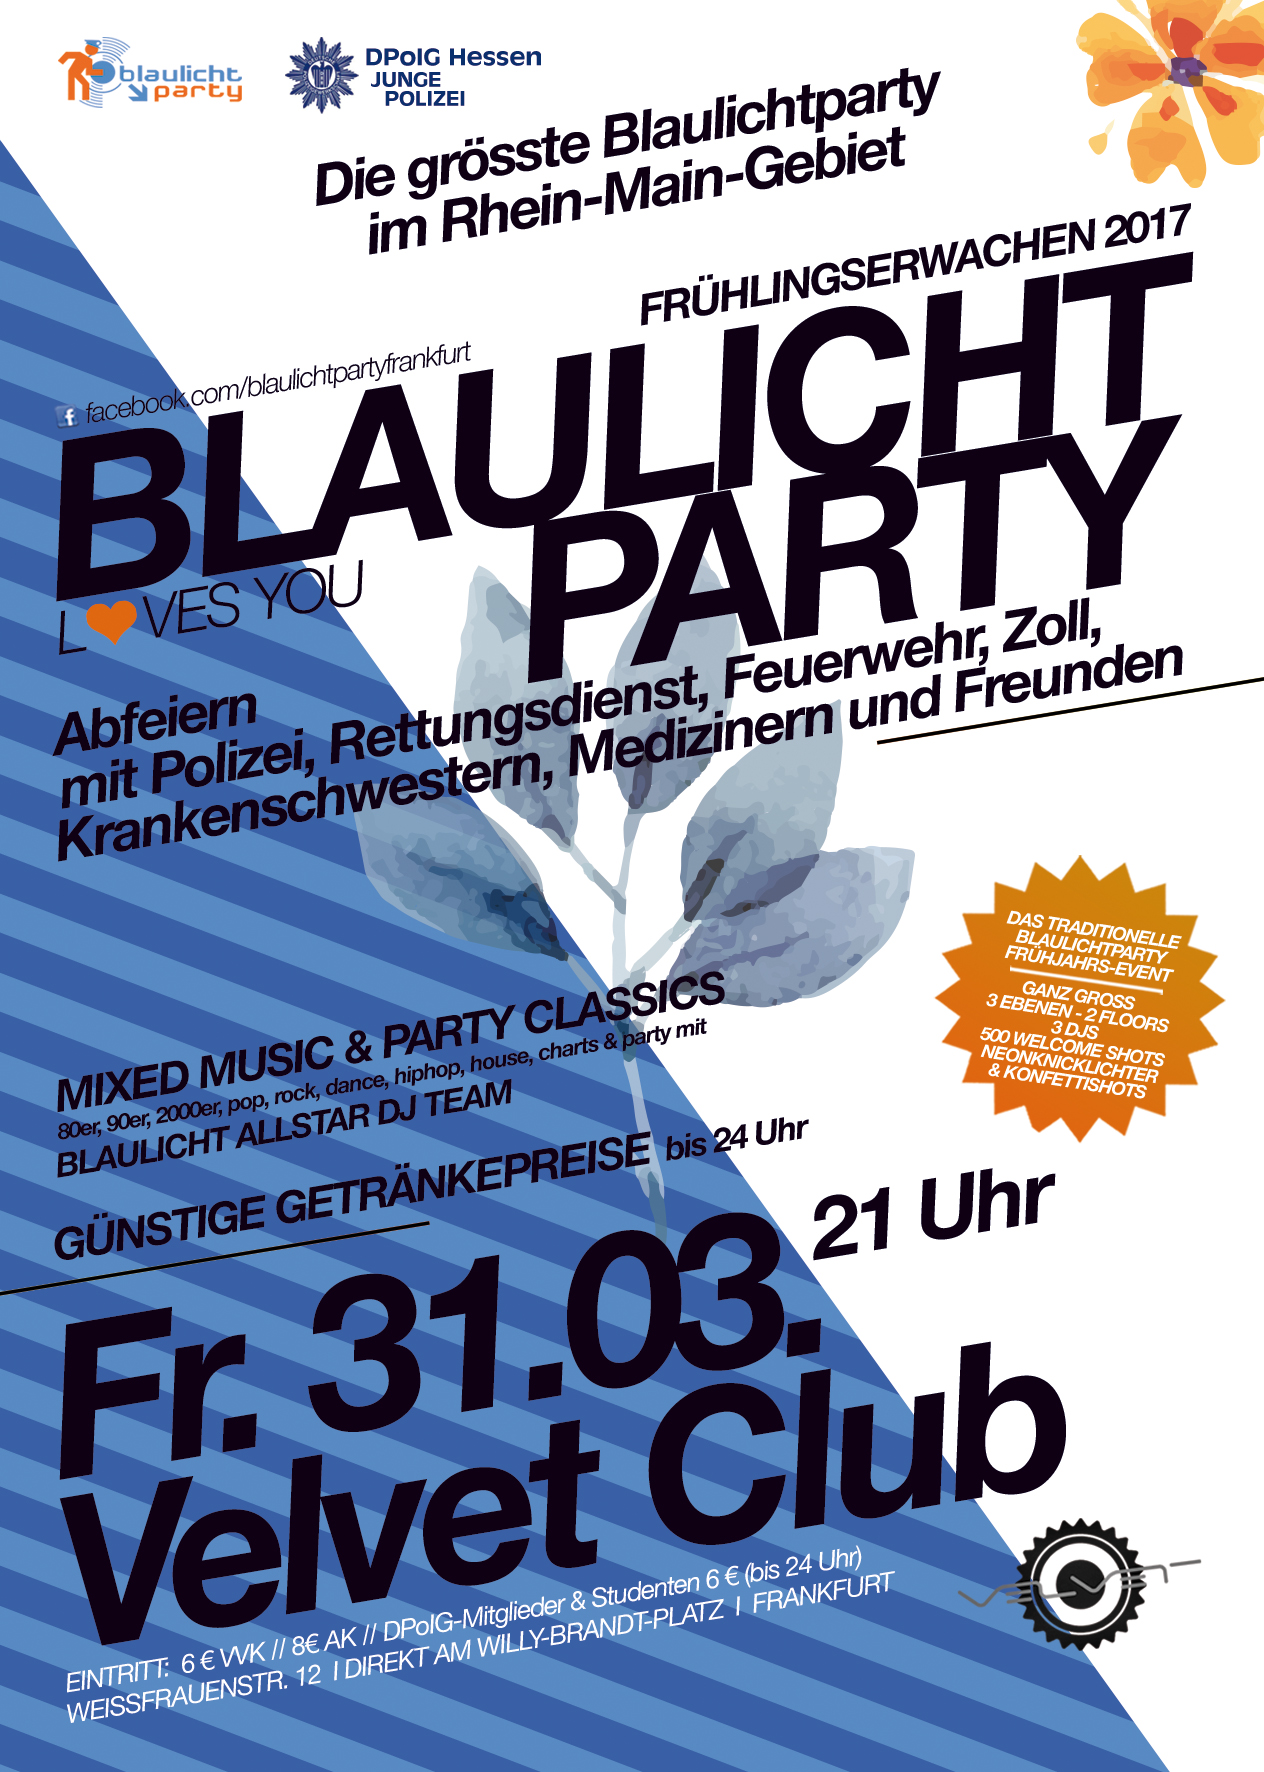 Velvet frankfurt single party